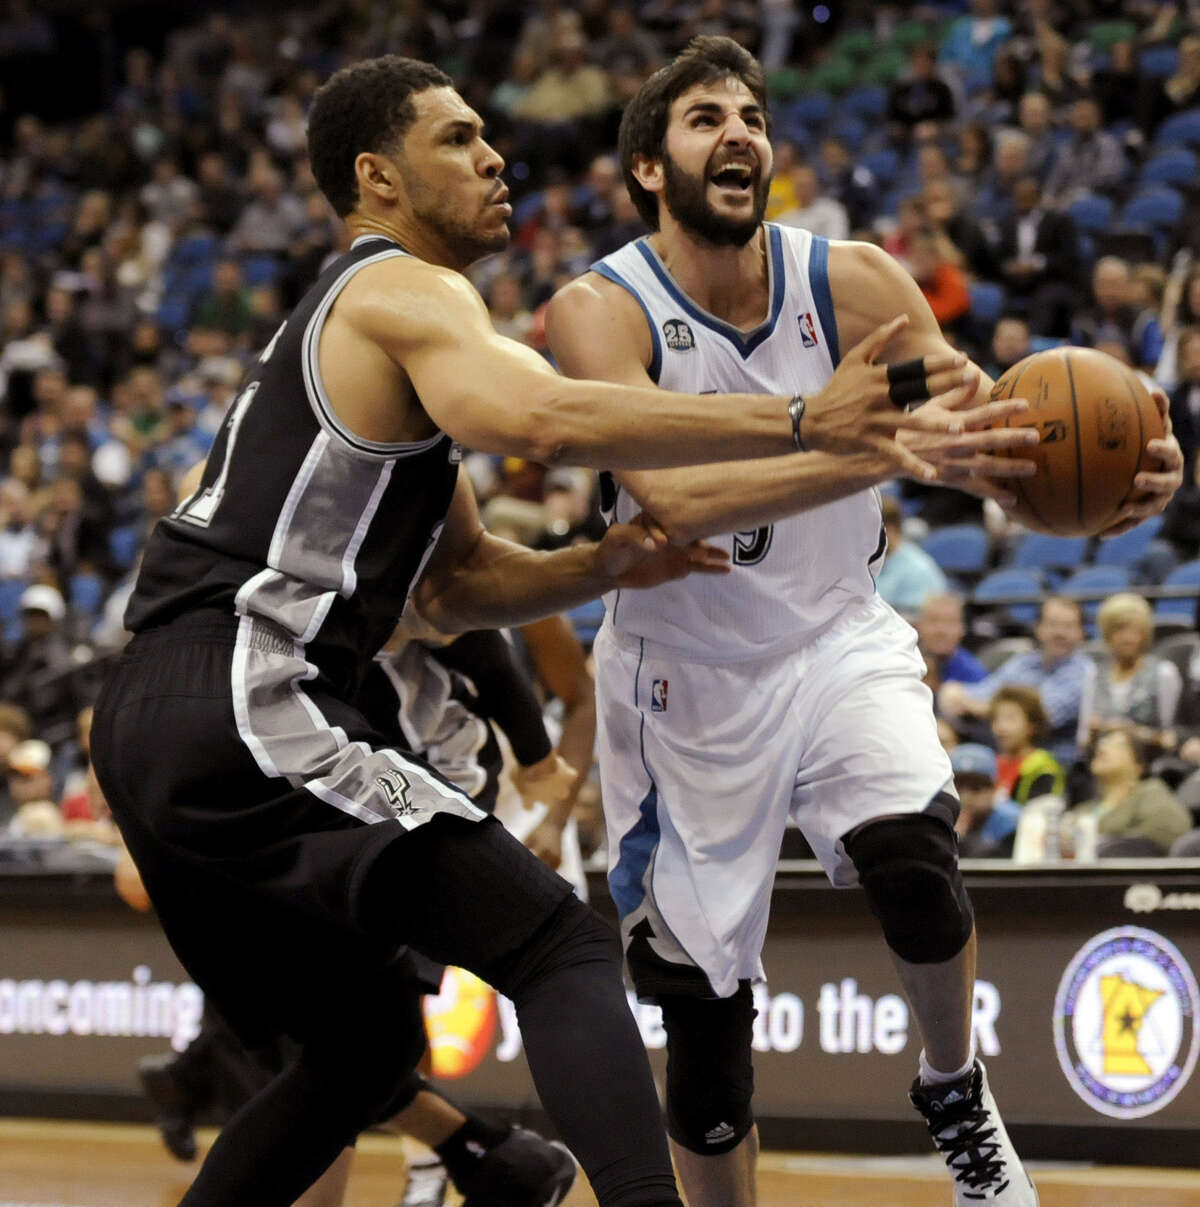 Timberwolves point guard Ricky Rubio (right) prepares to shoot against Spurs forward Jeff Ayres at Minneapolis' Target Center.